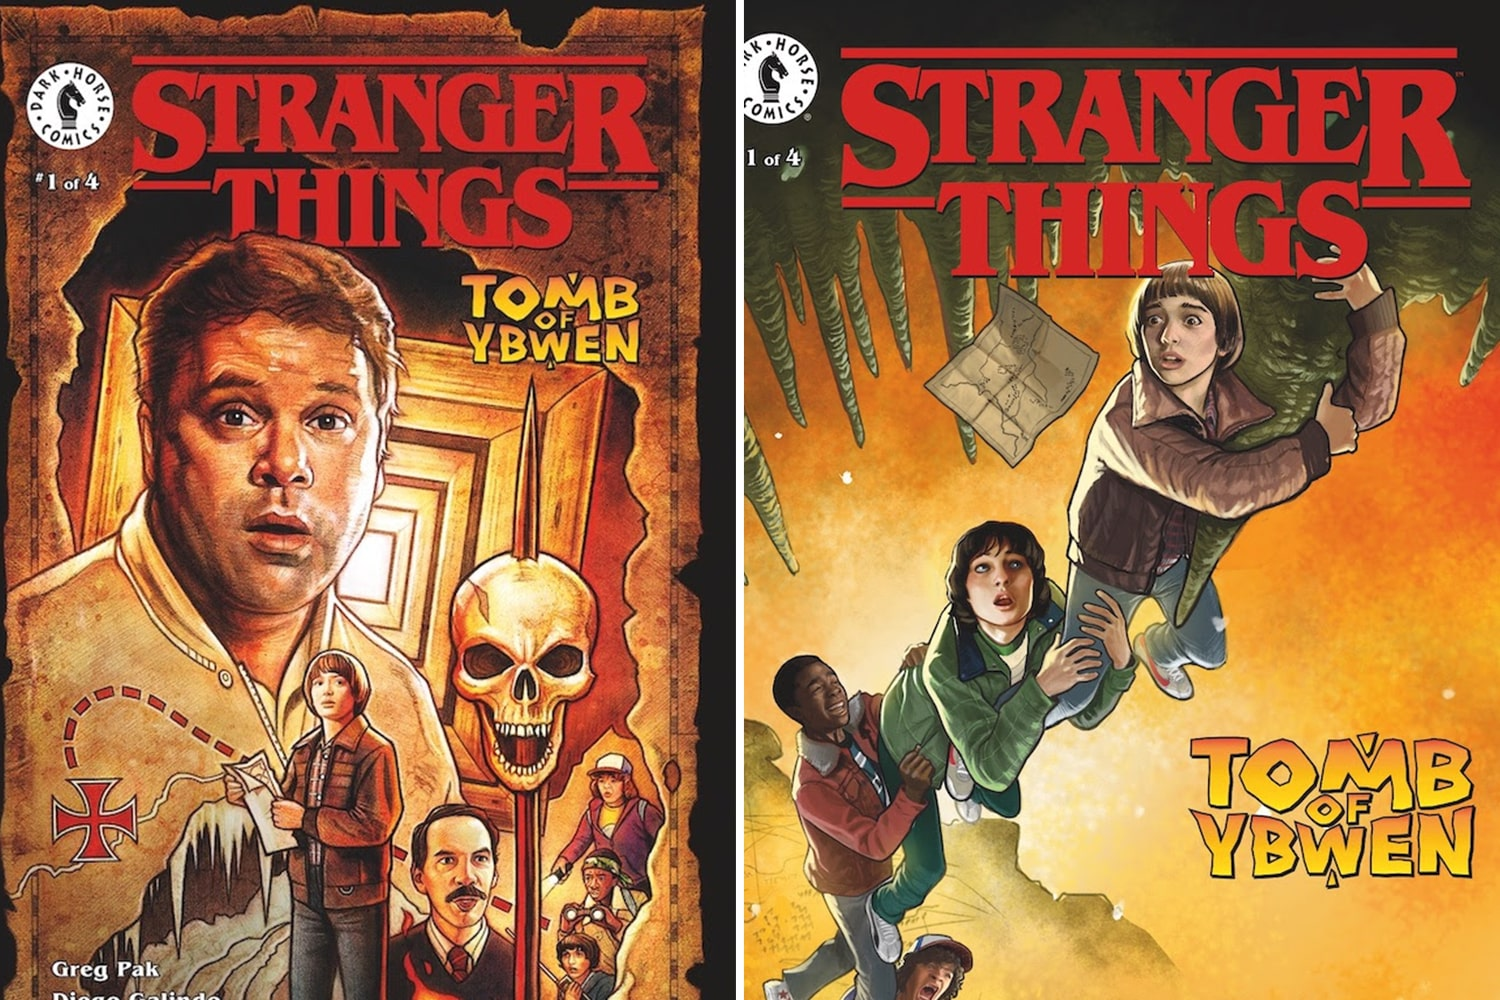 'Stranger Things: The Tomb of Ybwen' #1 is the start to a great eerie story